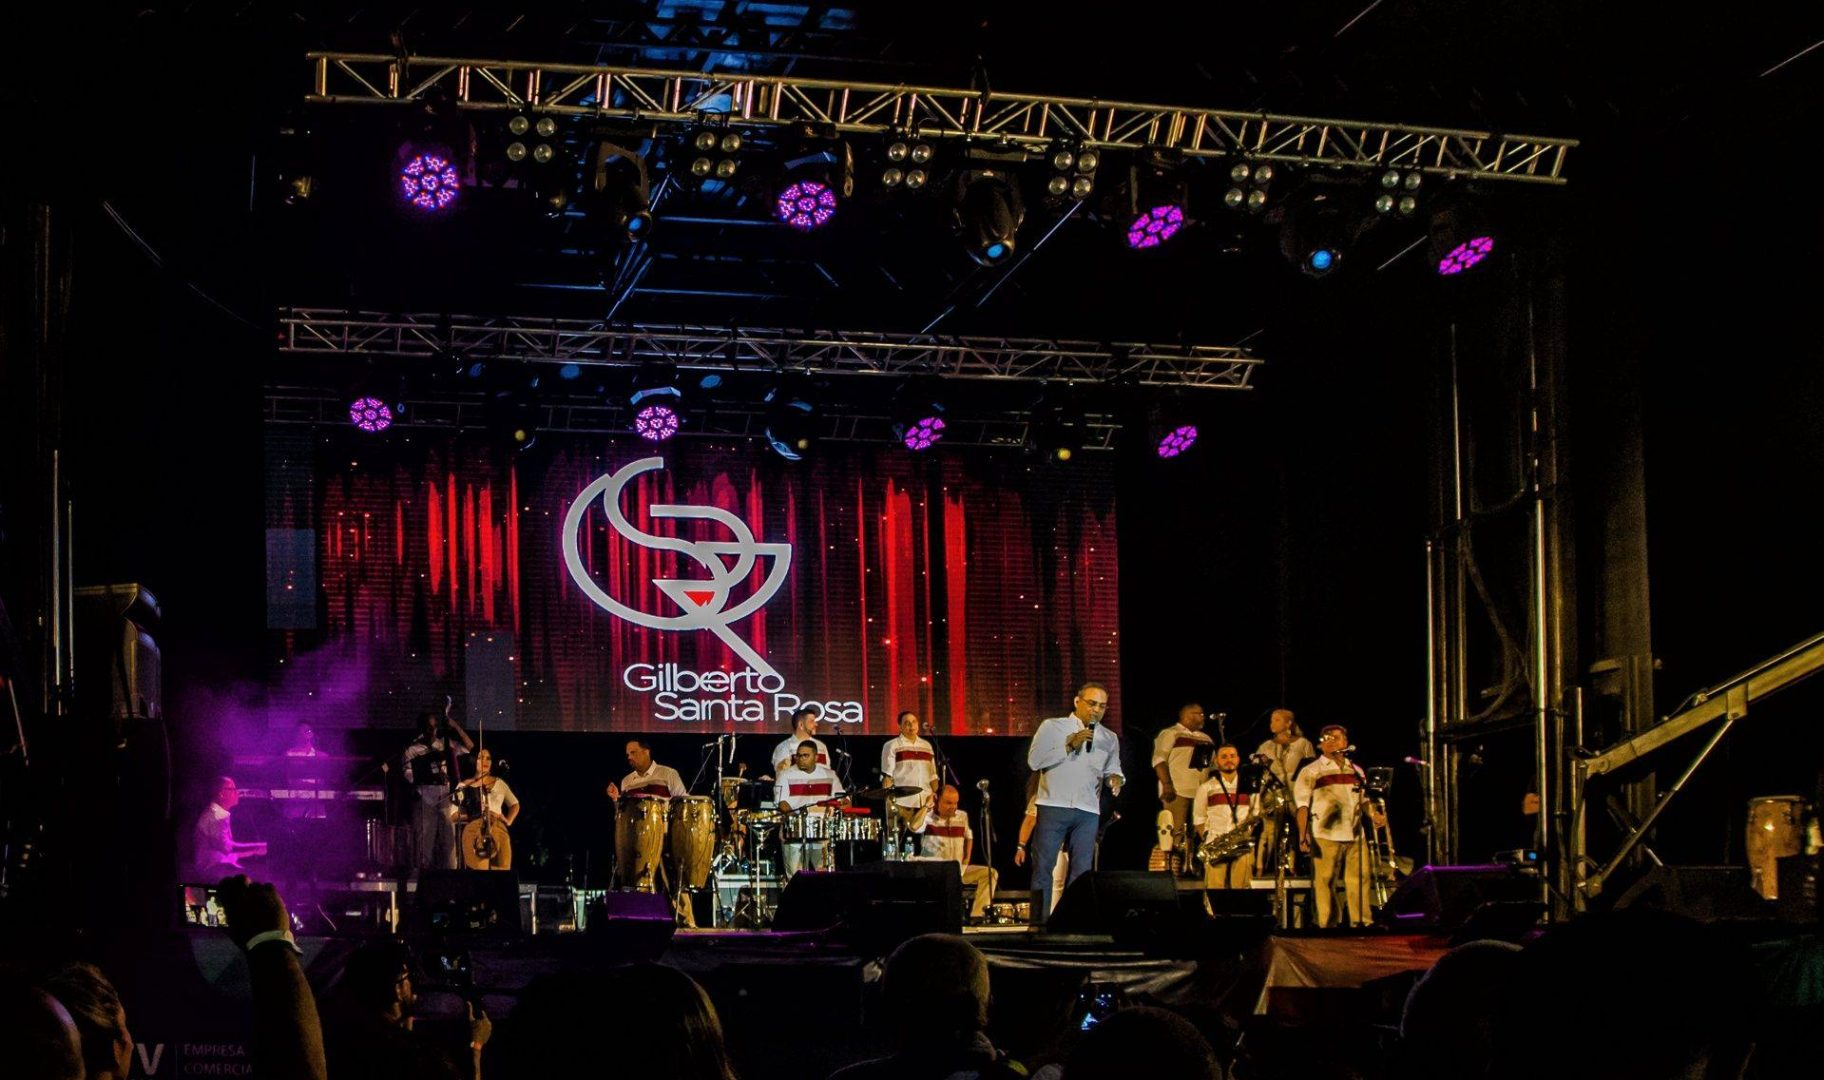 The Puerto Rican singer Gilberto Santa Rosa and his group play for the first time for a Cuban audience at the Varadero Josone Festival. Photo: Kako Escalona / Magazine AM: PM.